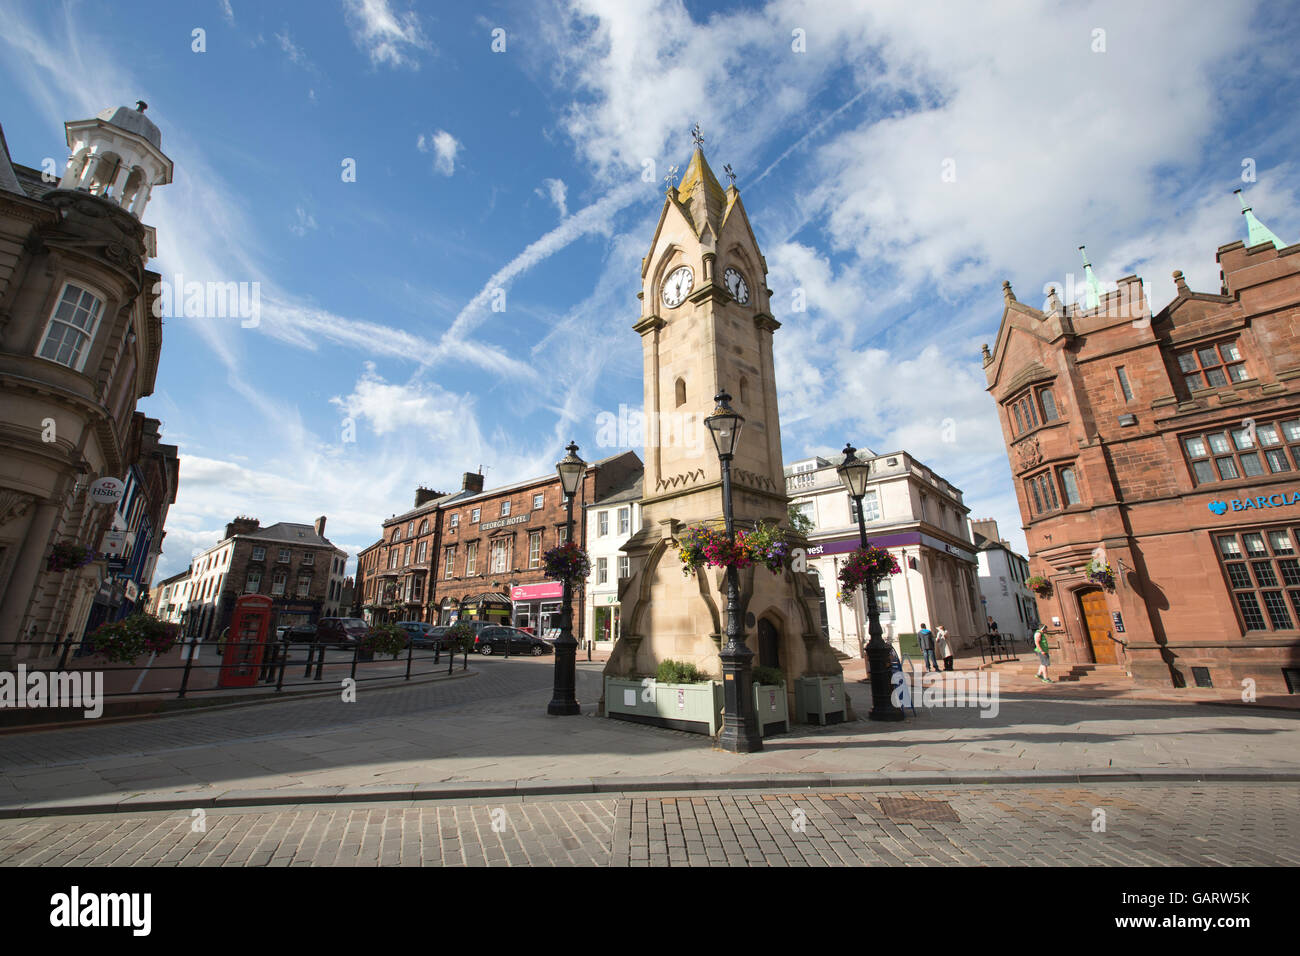 Penrith formerly the capital of Cumbria, Lake District. The historic market town is the hub of the Eden Valley, - Stock Image